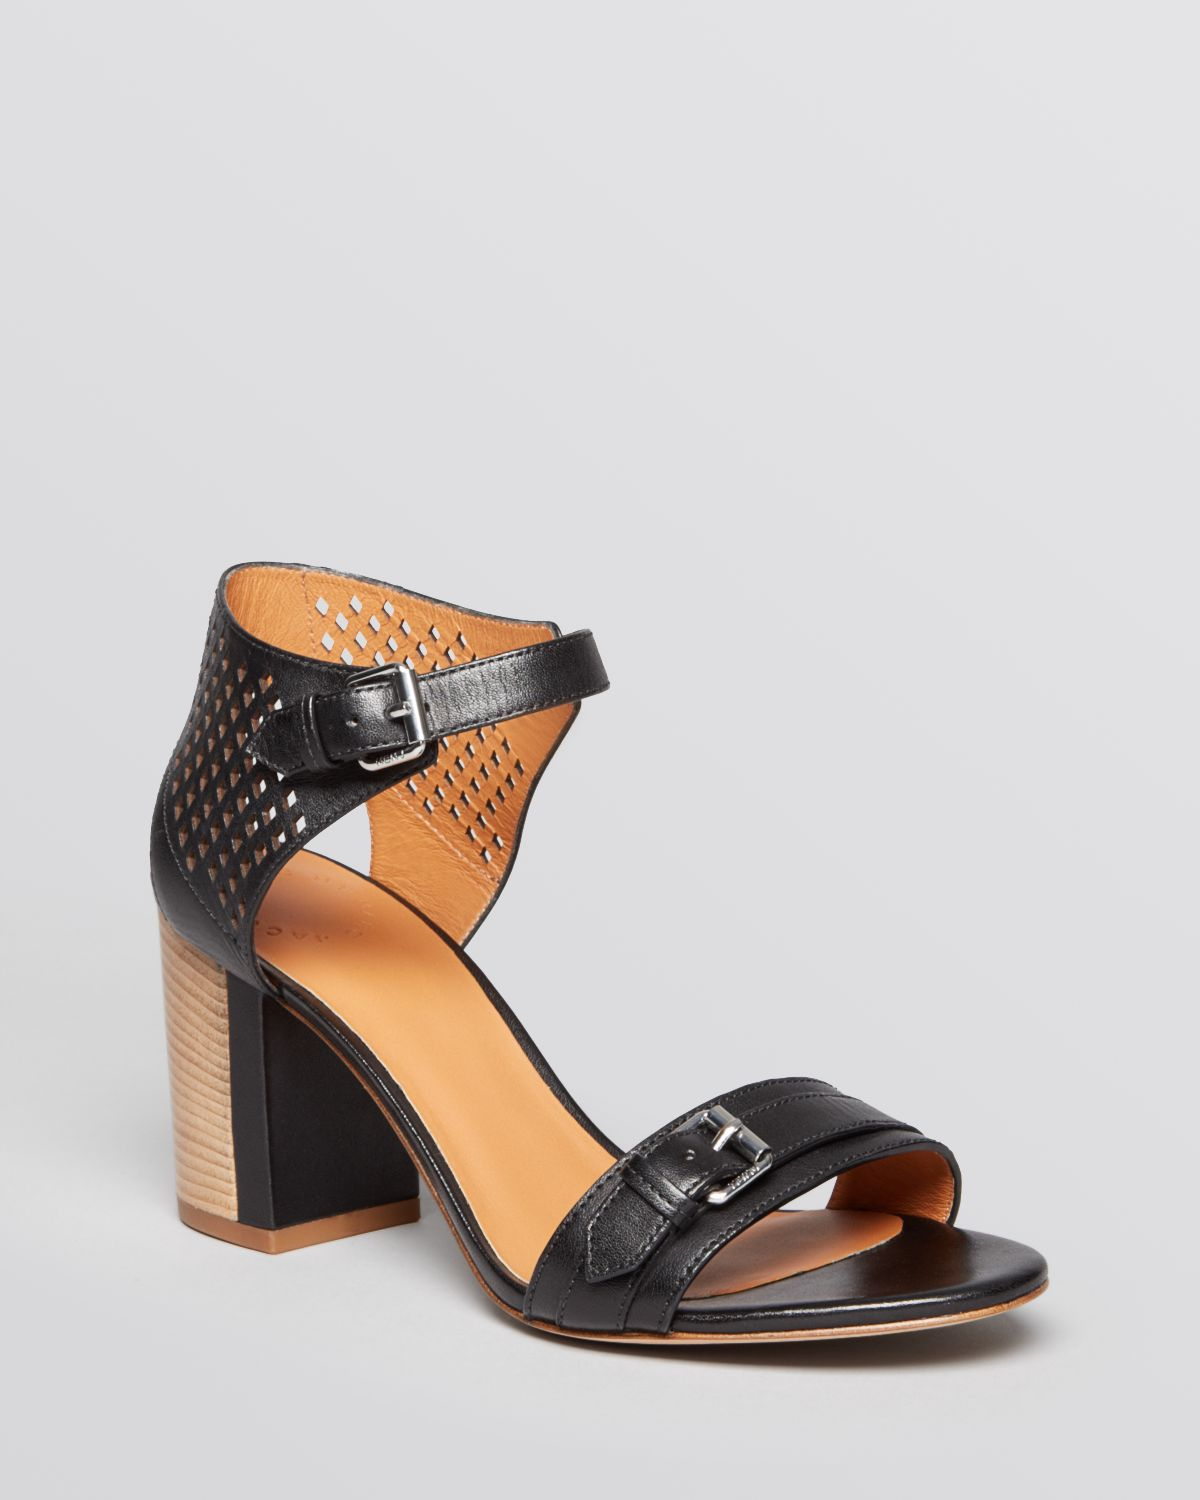 92b1e038a0d6 Lyst - Marc By Marc Jacobs Block Heel Ankle Strap Sandals in Black